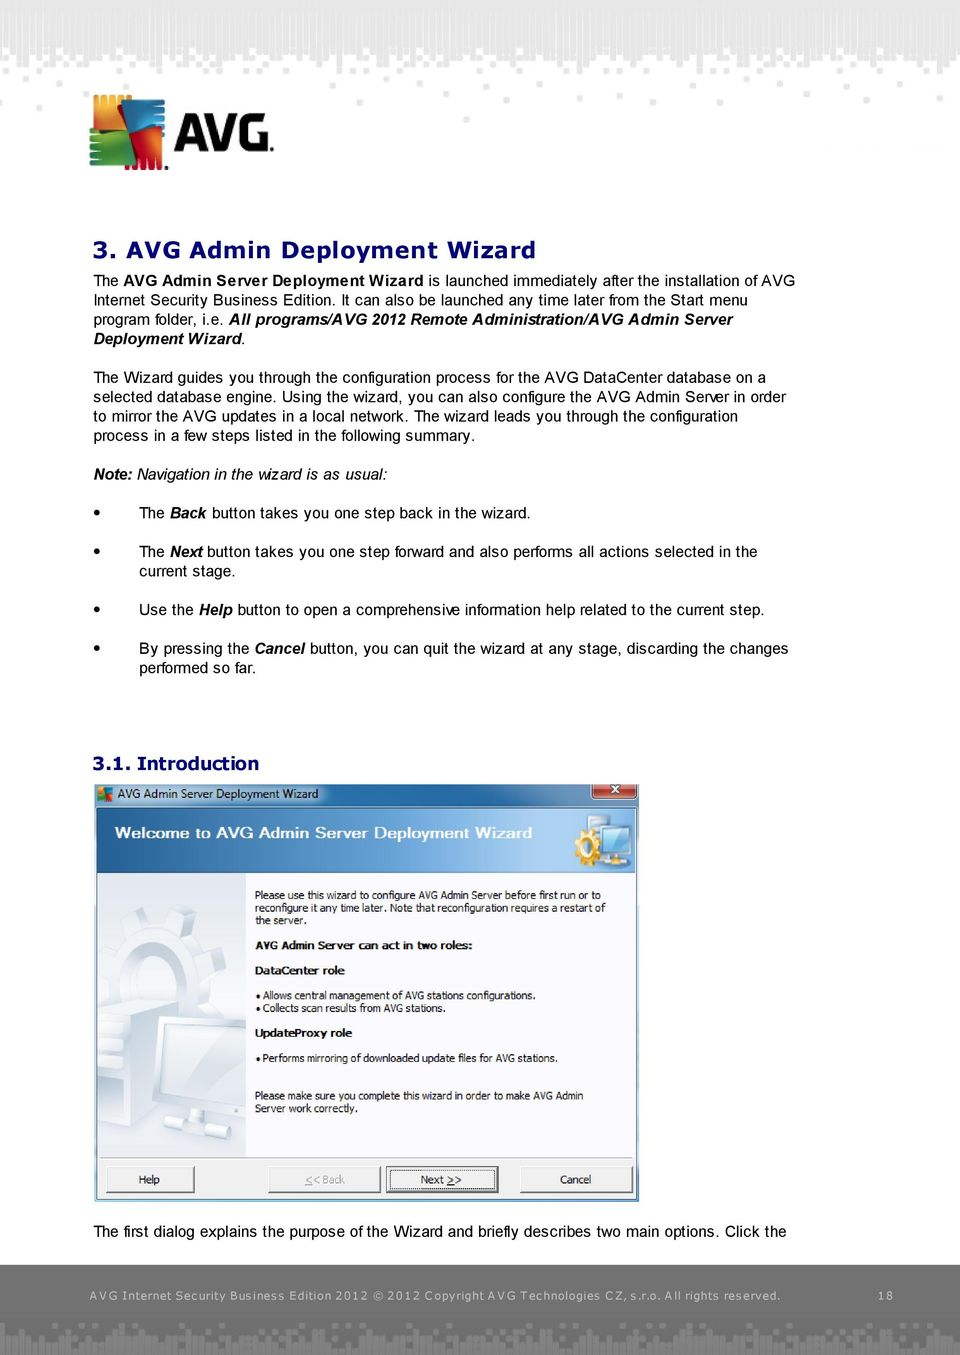 The Wizard guides you through the configuration process for the AVG DataCenter database on a selected database engine.